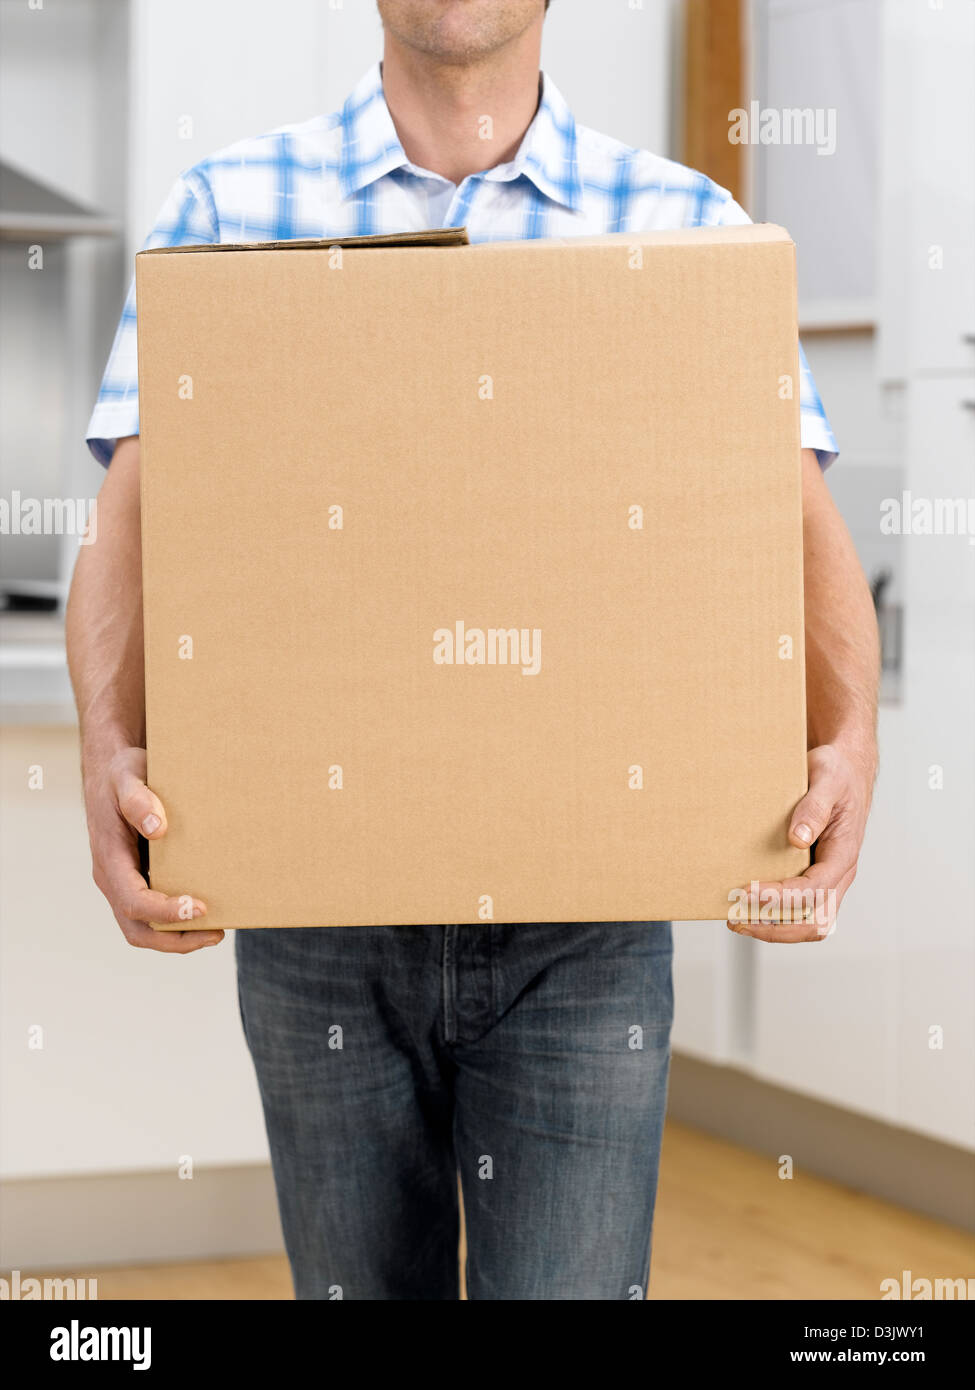 man carrying box - Stock Image